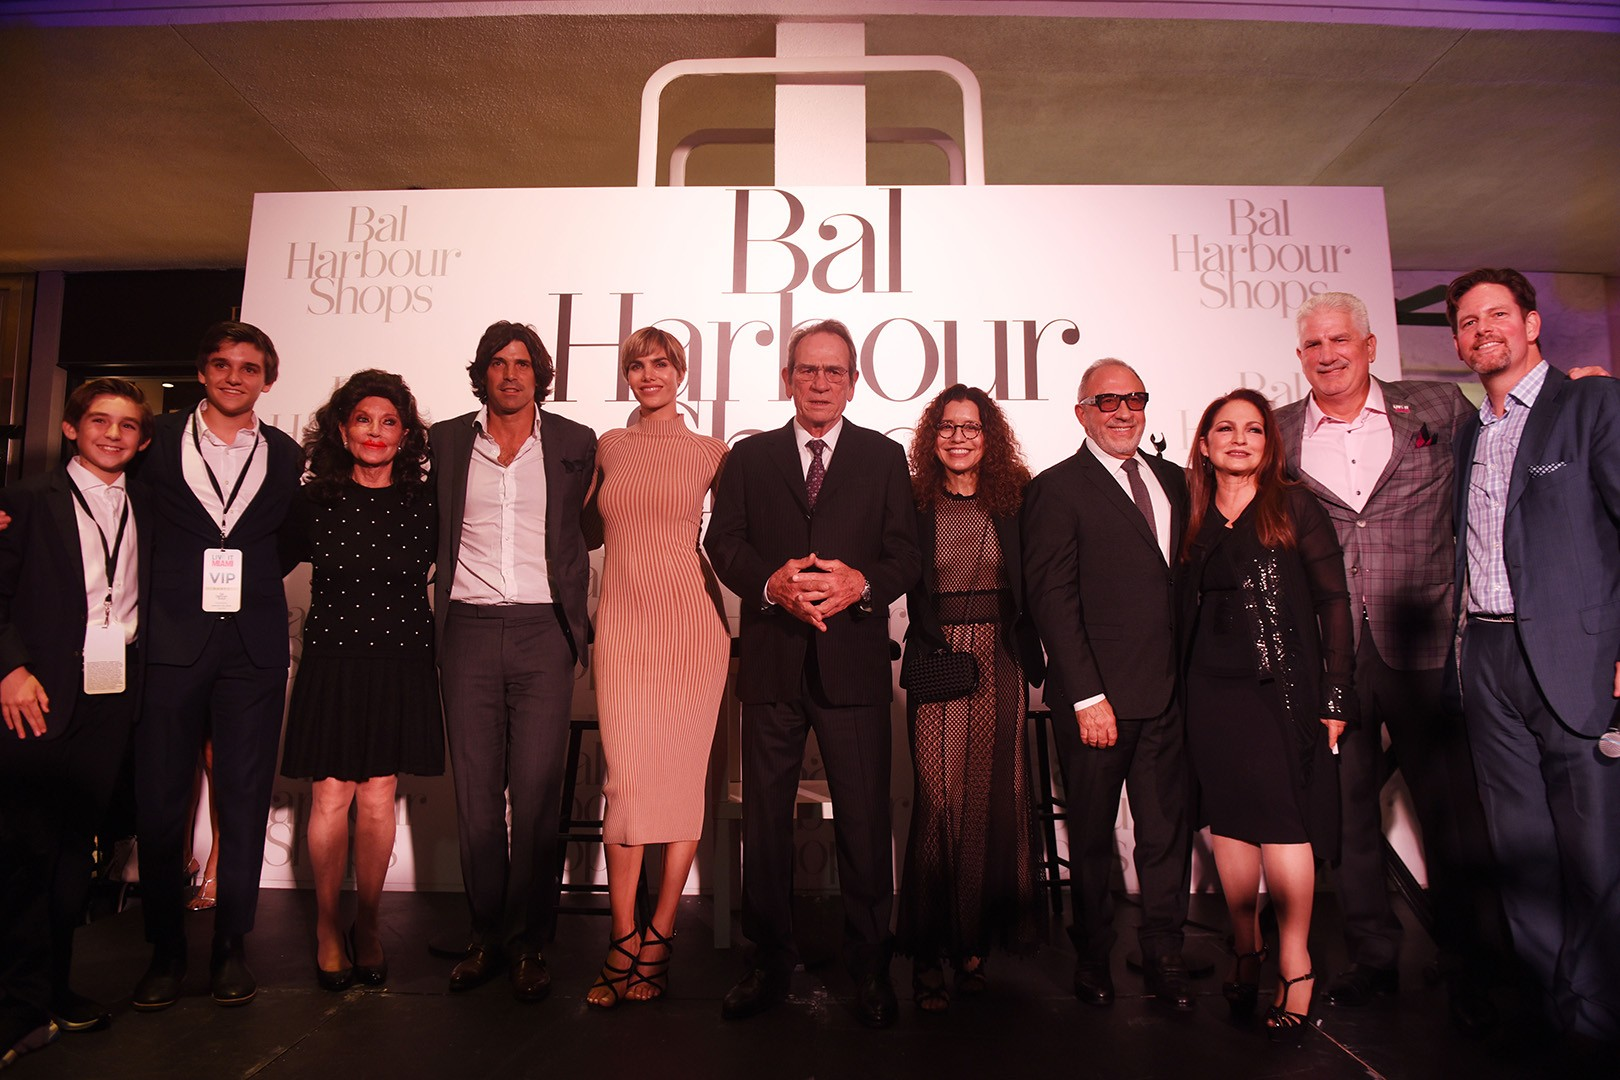 Austin Sayfie Aagaard, Anders Sayfie Aagaard, Christine E. Lynn, Nacho Figueras, Delfina Blaquier, Tommy Lee Jones, Dawn Jones, Emilio Estefan, Gloria Estefan, Rodney Barreto and Matthew Whitman Lazenby